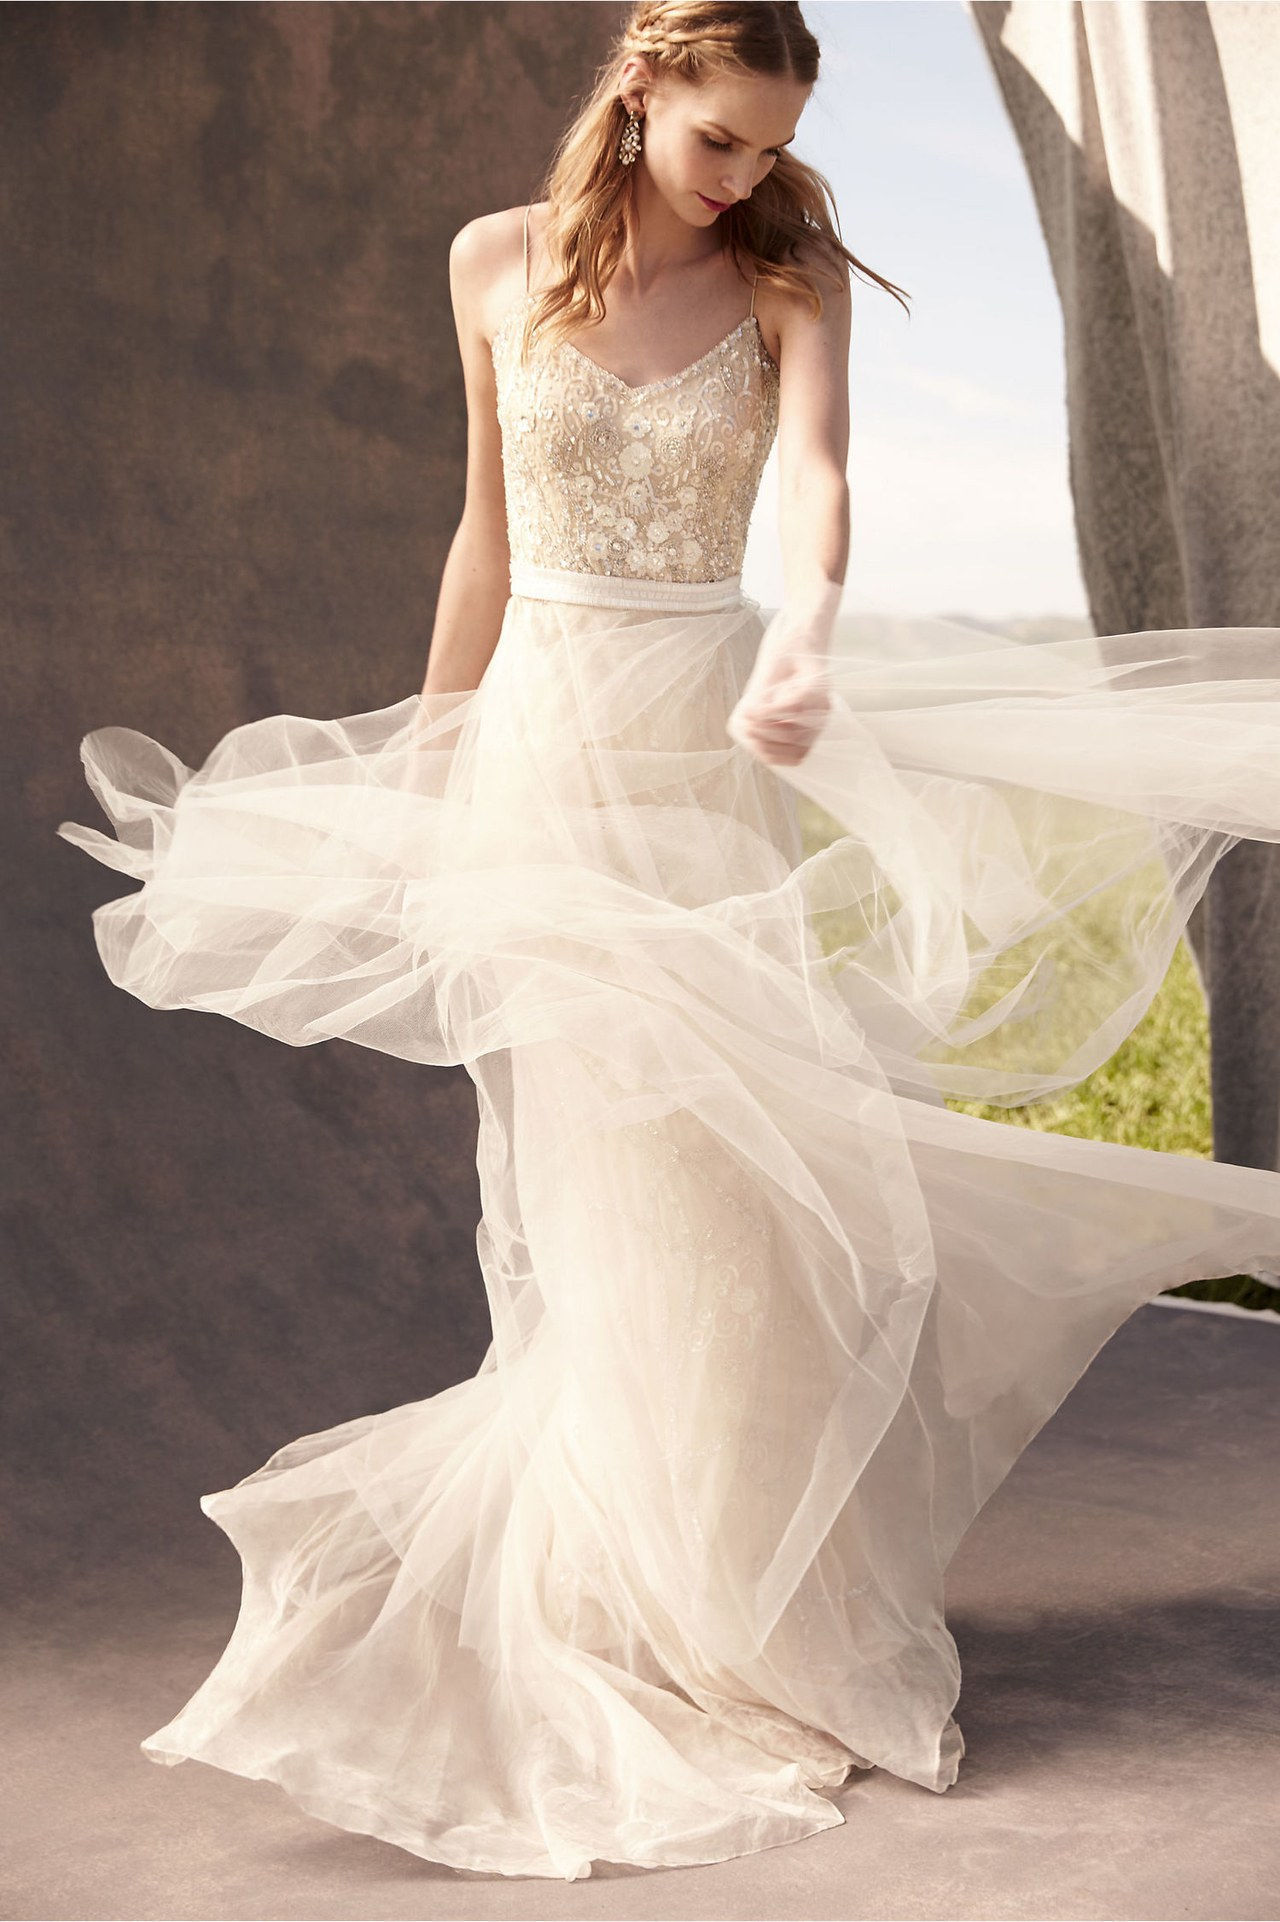 3 2 in 1 wedding dresses wedding gowns mix and match wedding dresses bhldn 0430 courtesy